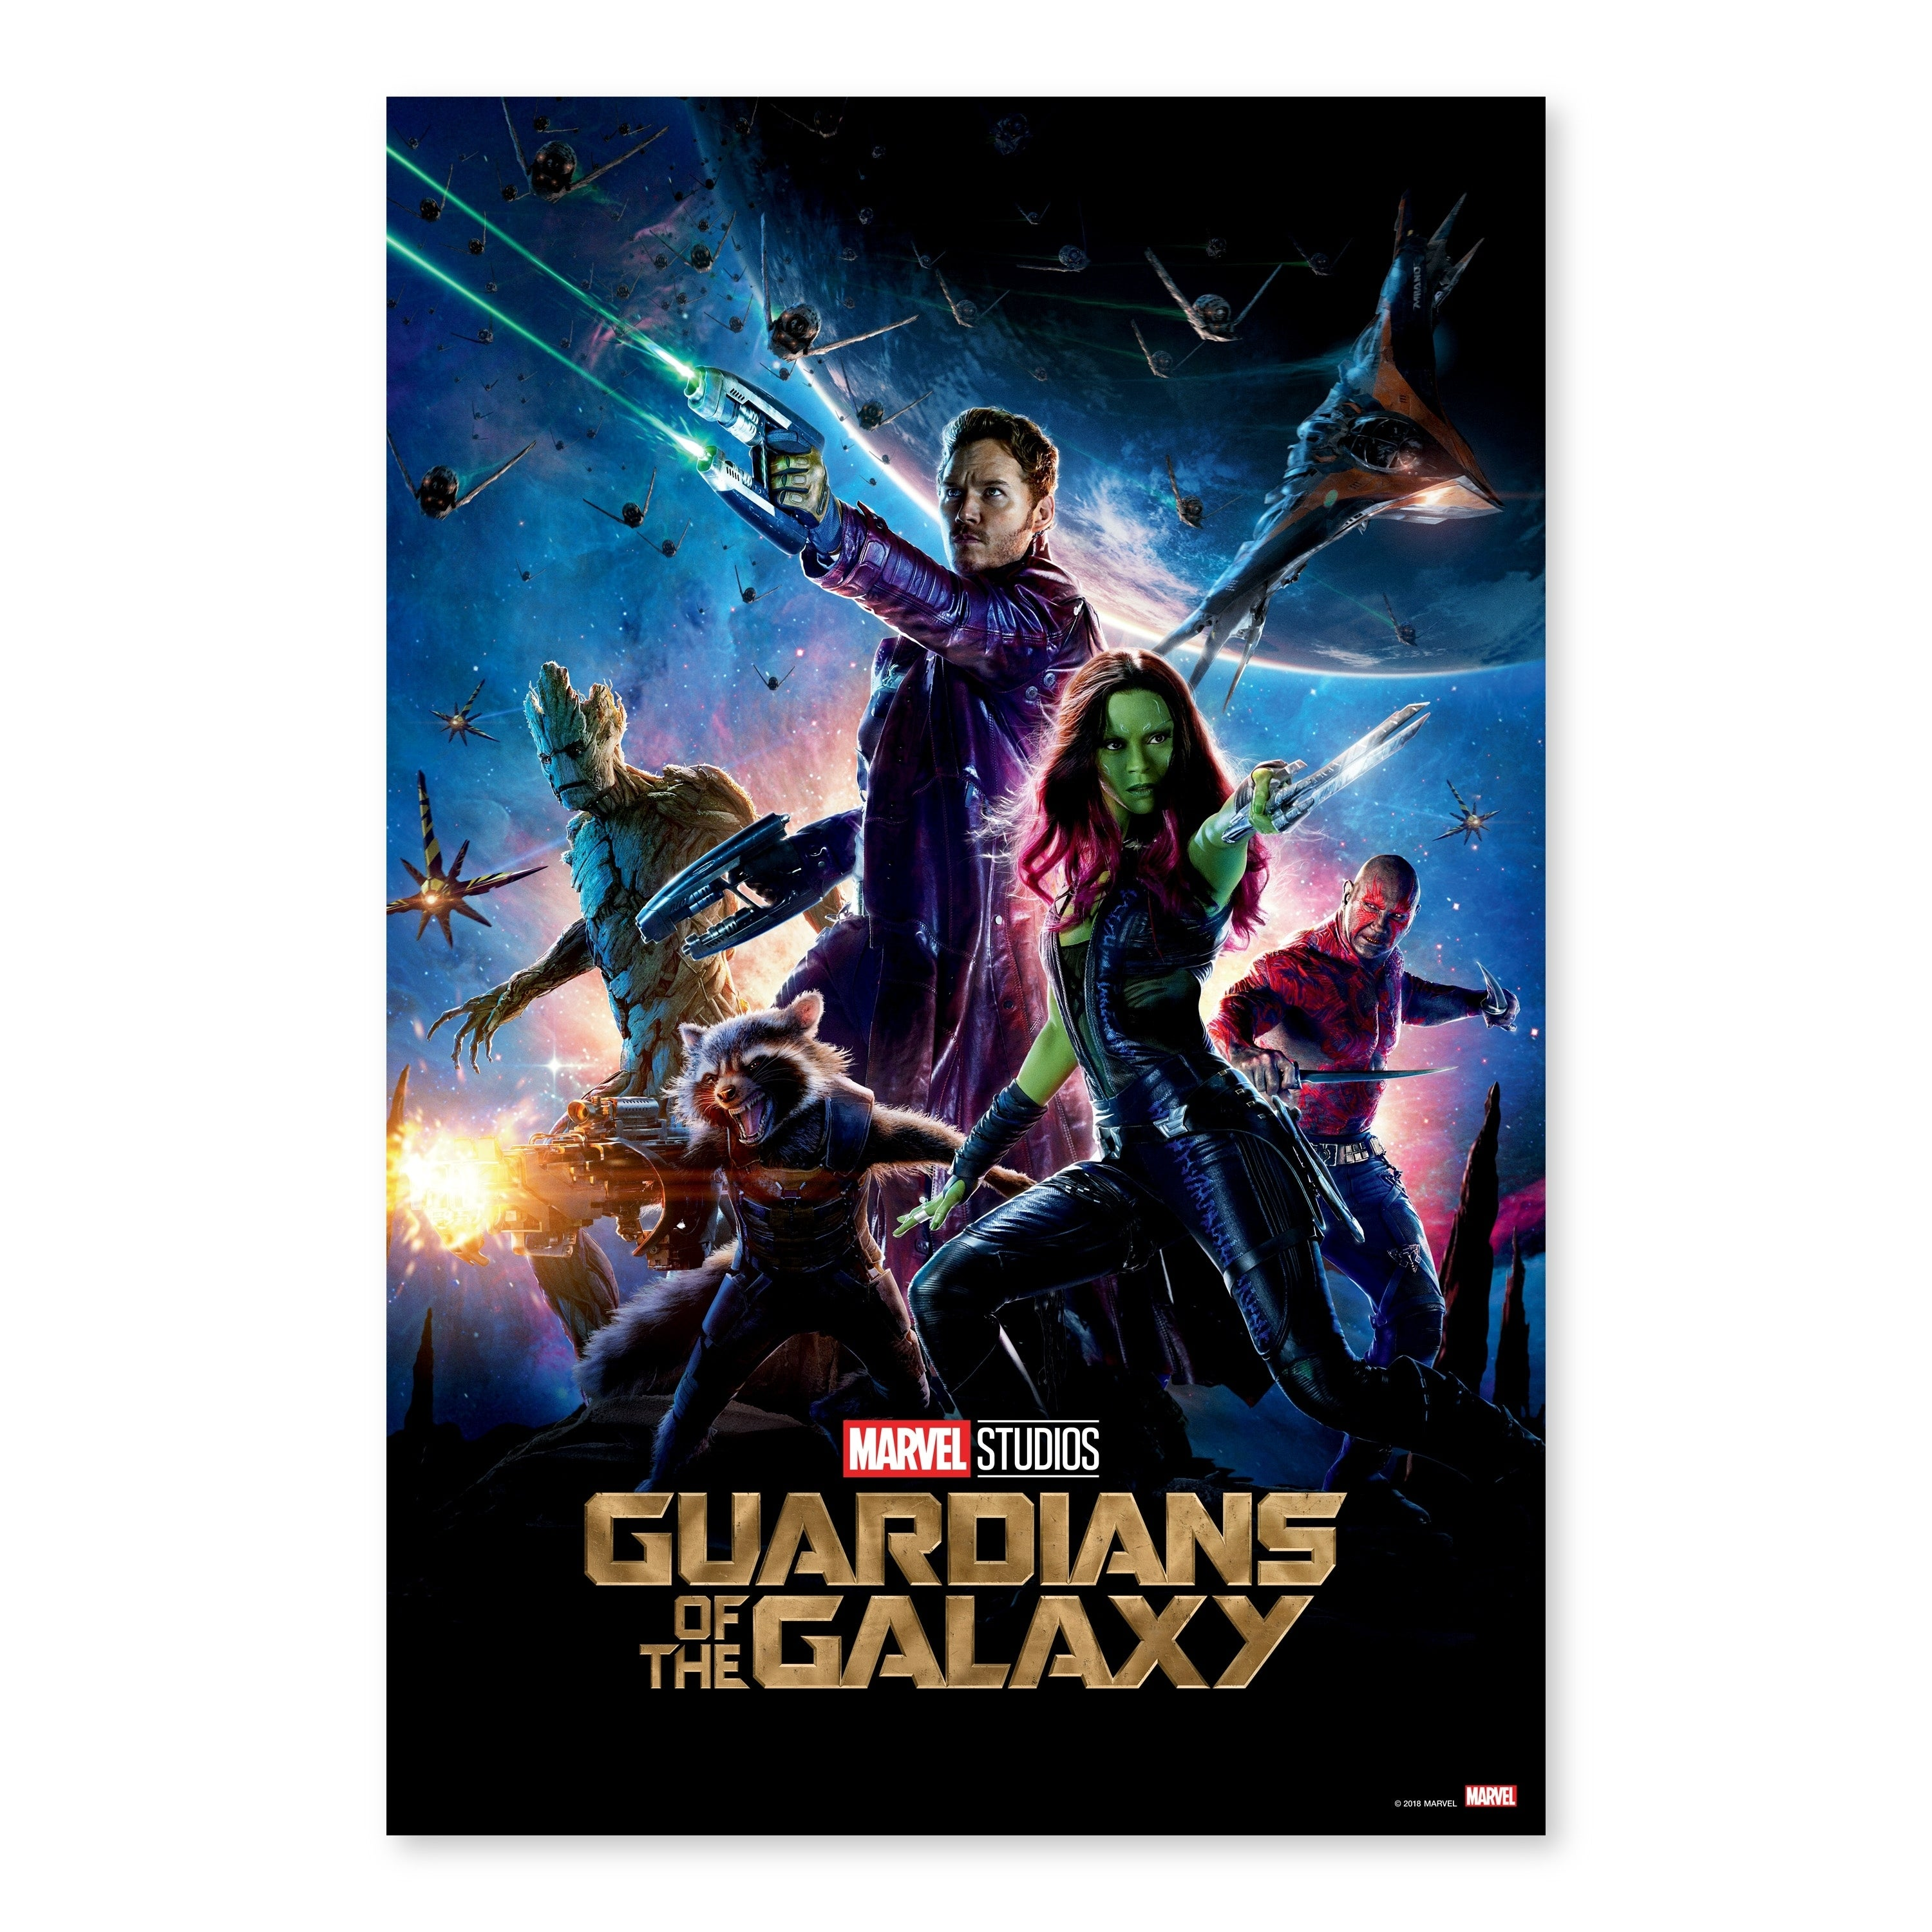 Guardians Of The Galaxy Hot Movie Art Canvas Poster Print 12x18 24x36 inch